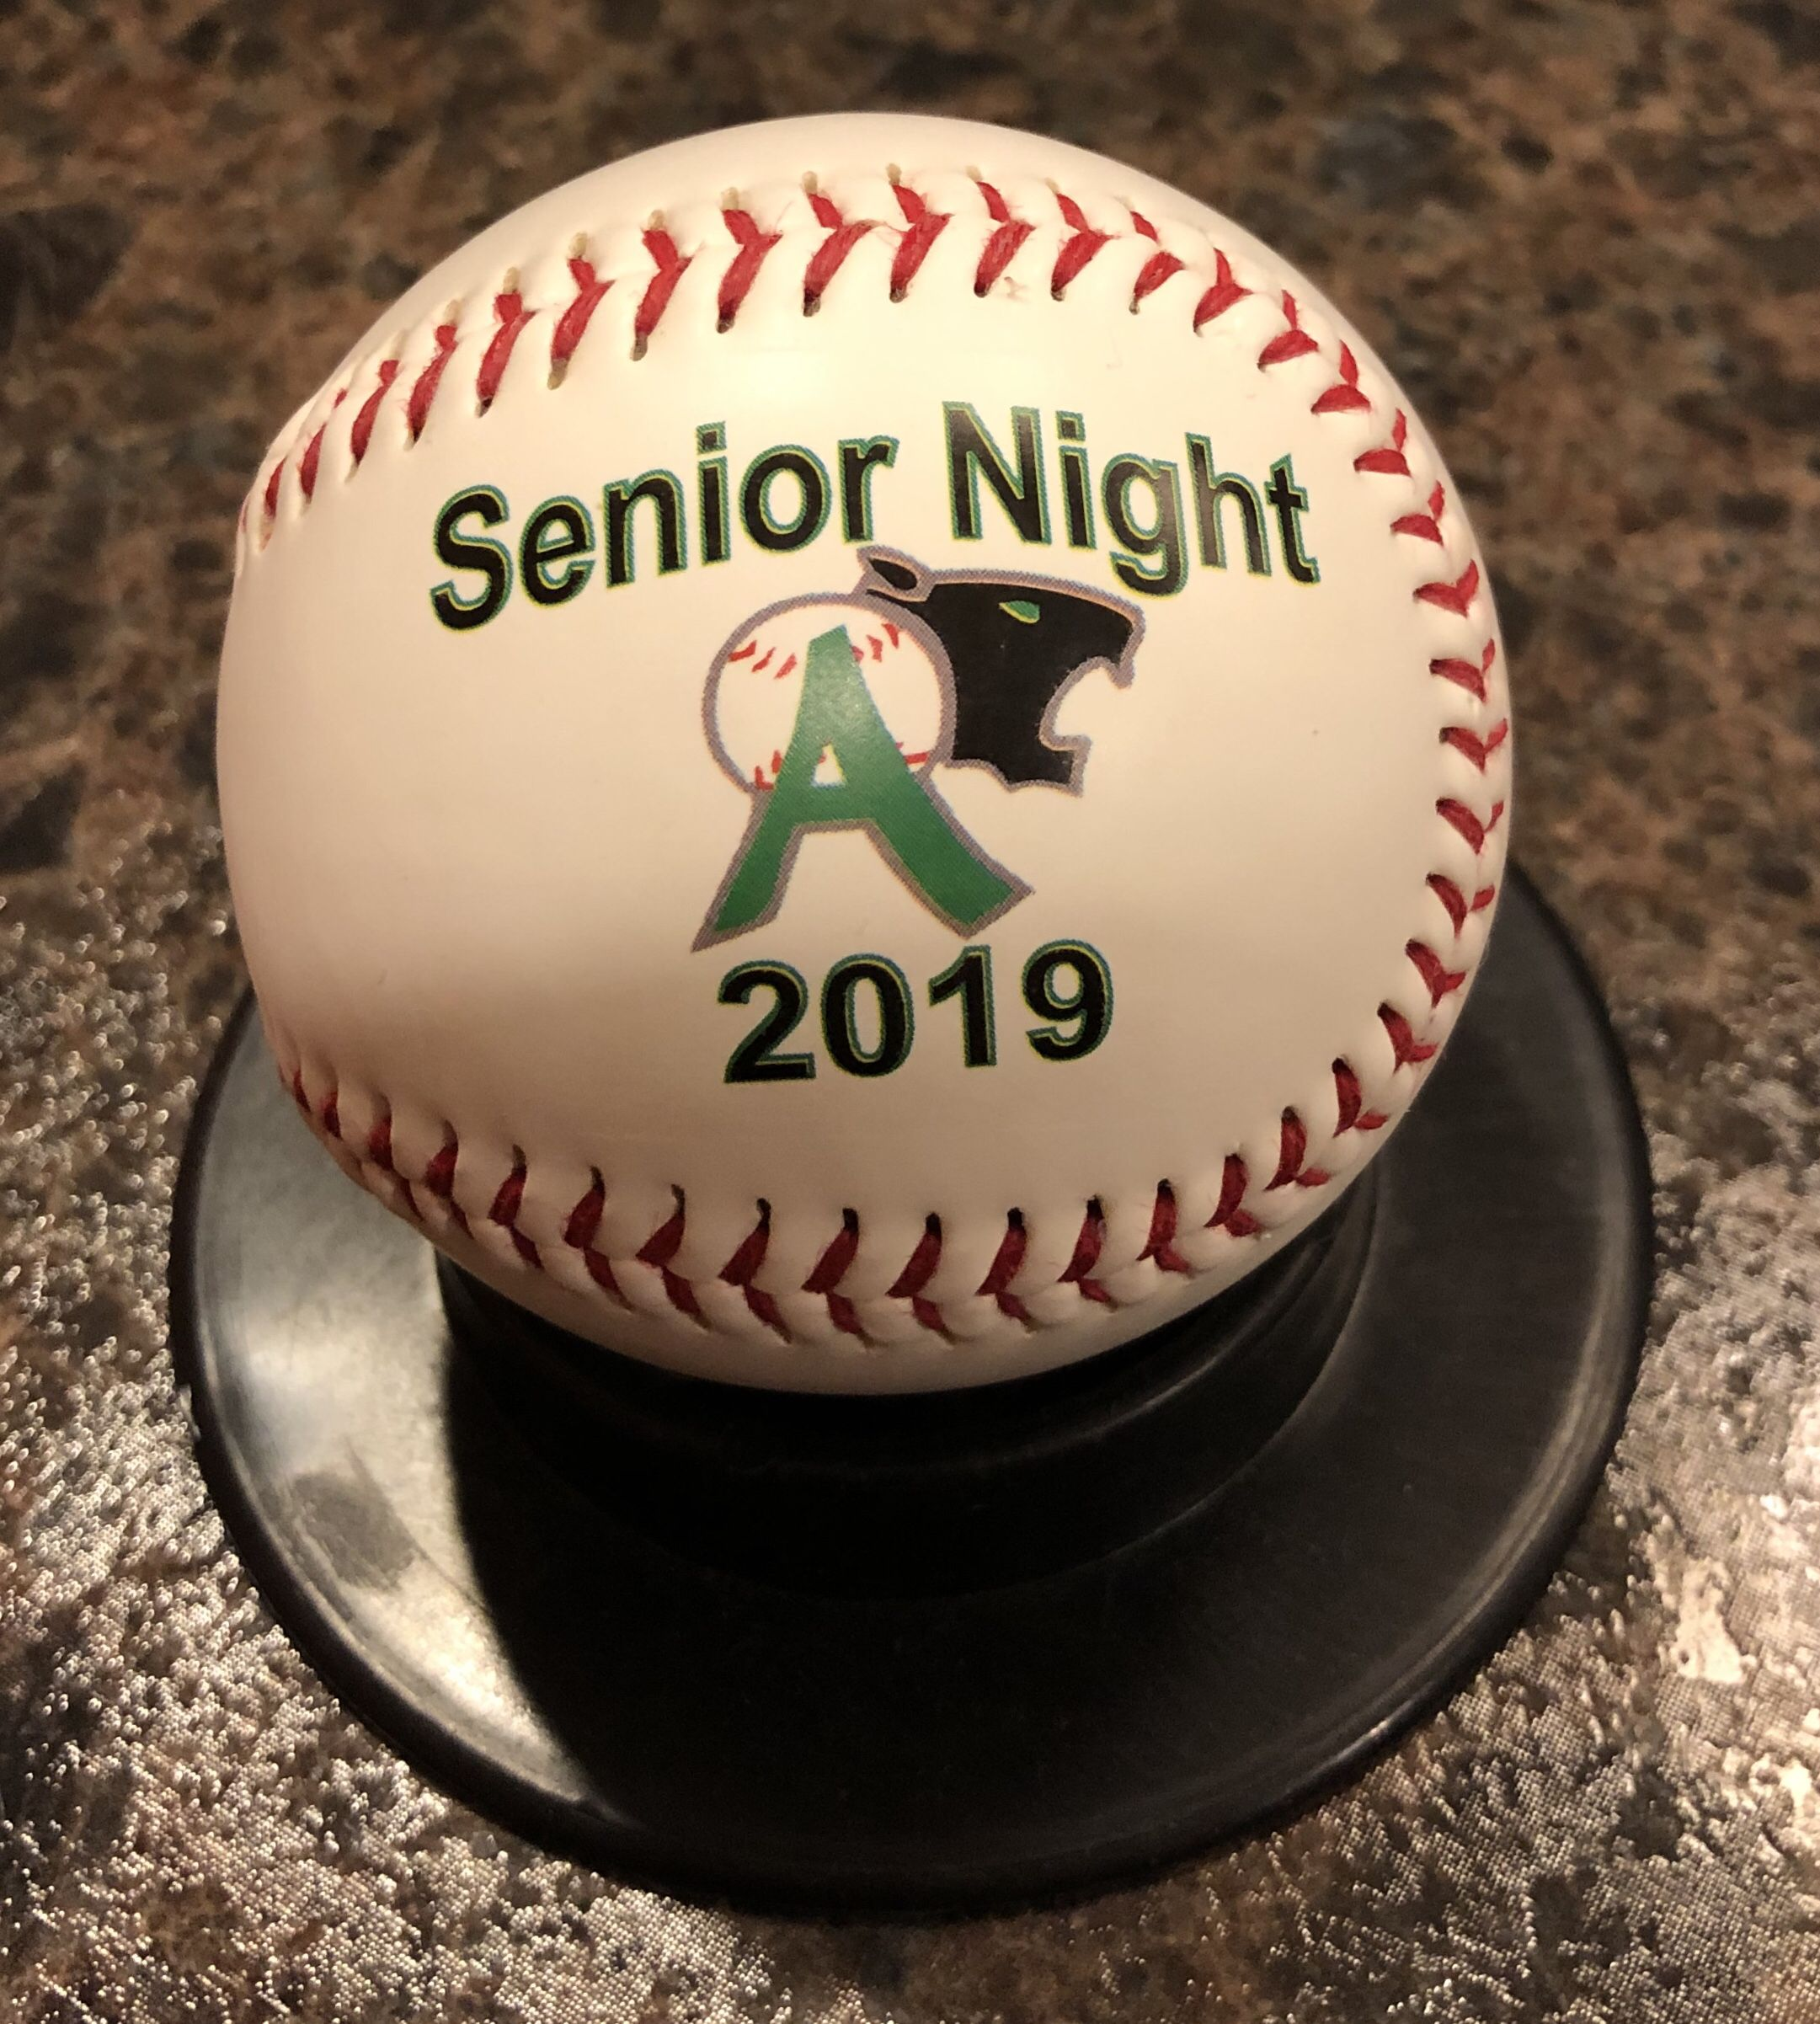 Celebrate the seniors with our personalized baseballs